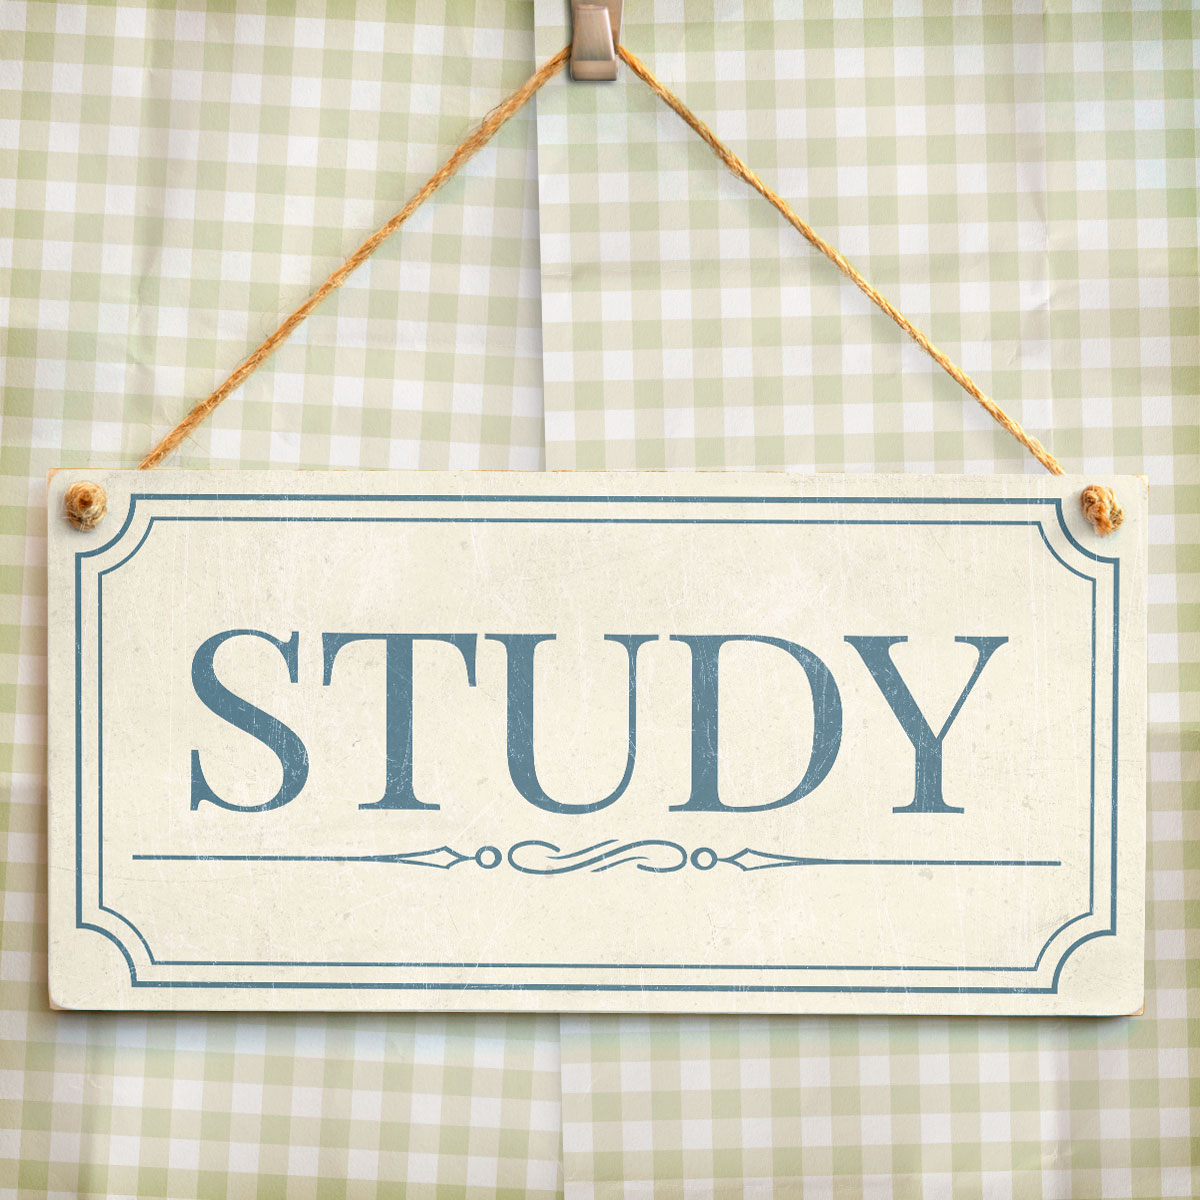 Study Shabby Chic Style Home Accessory Gift Sign